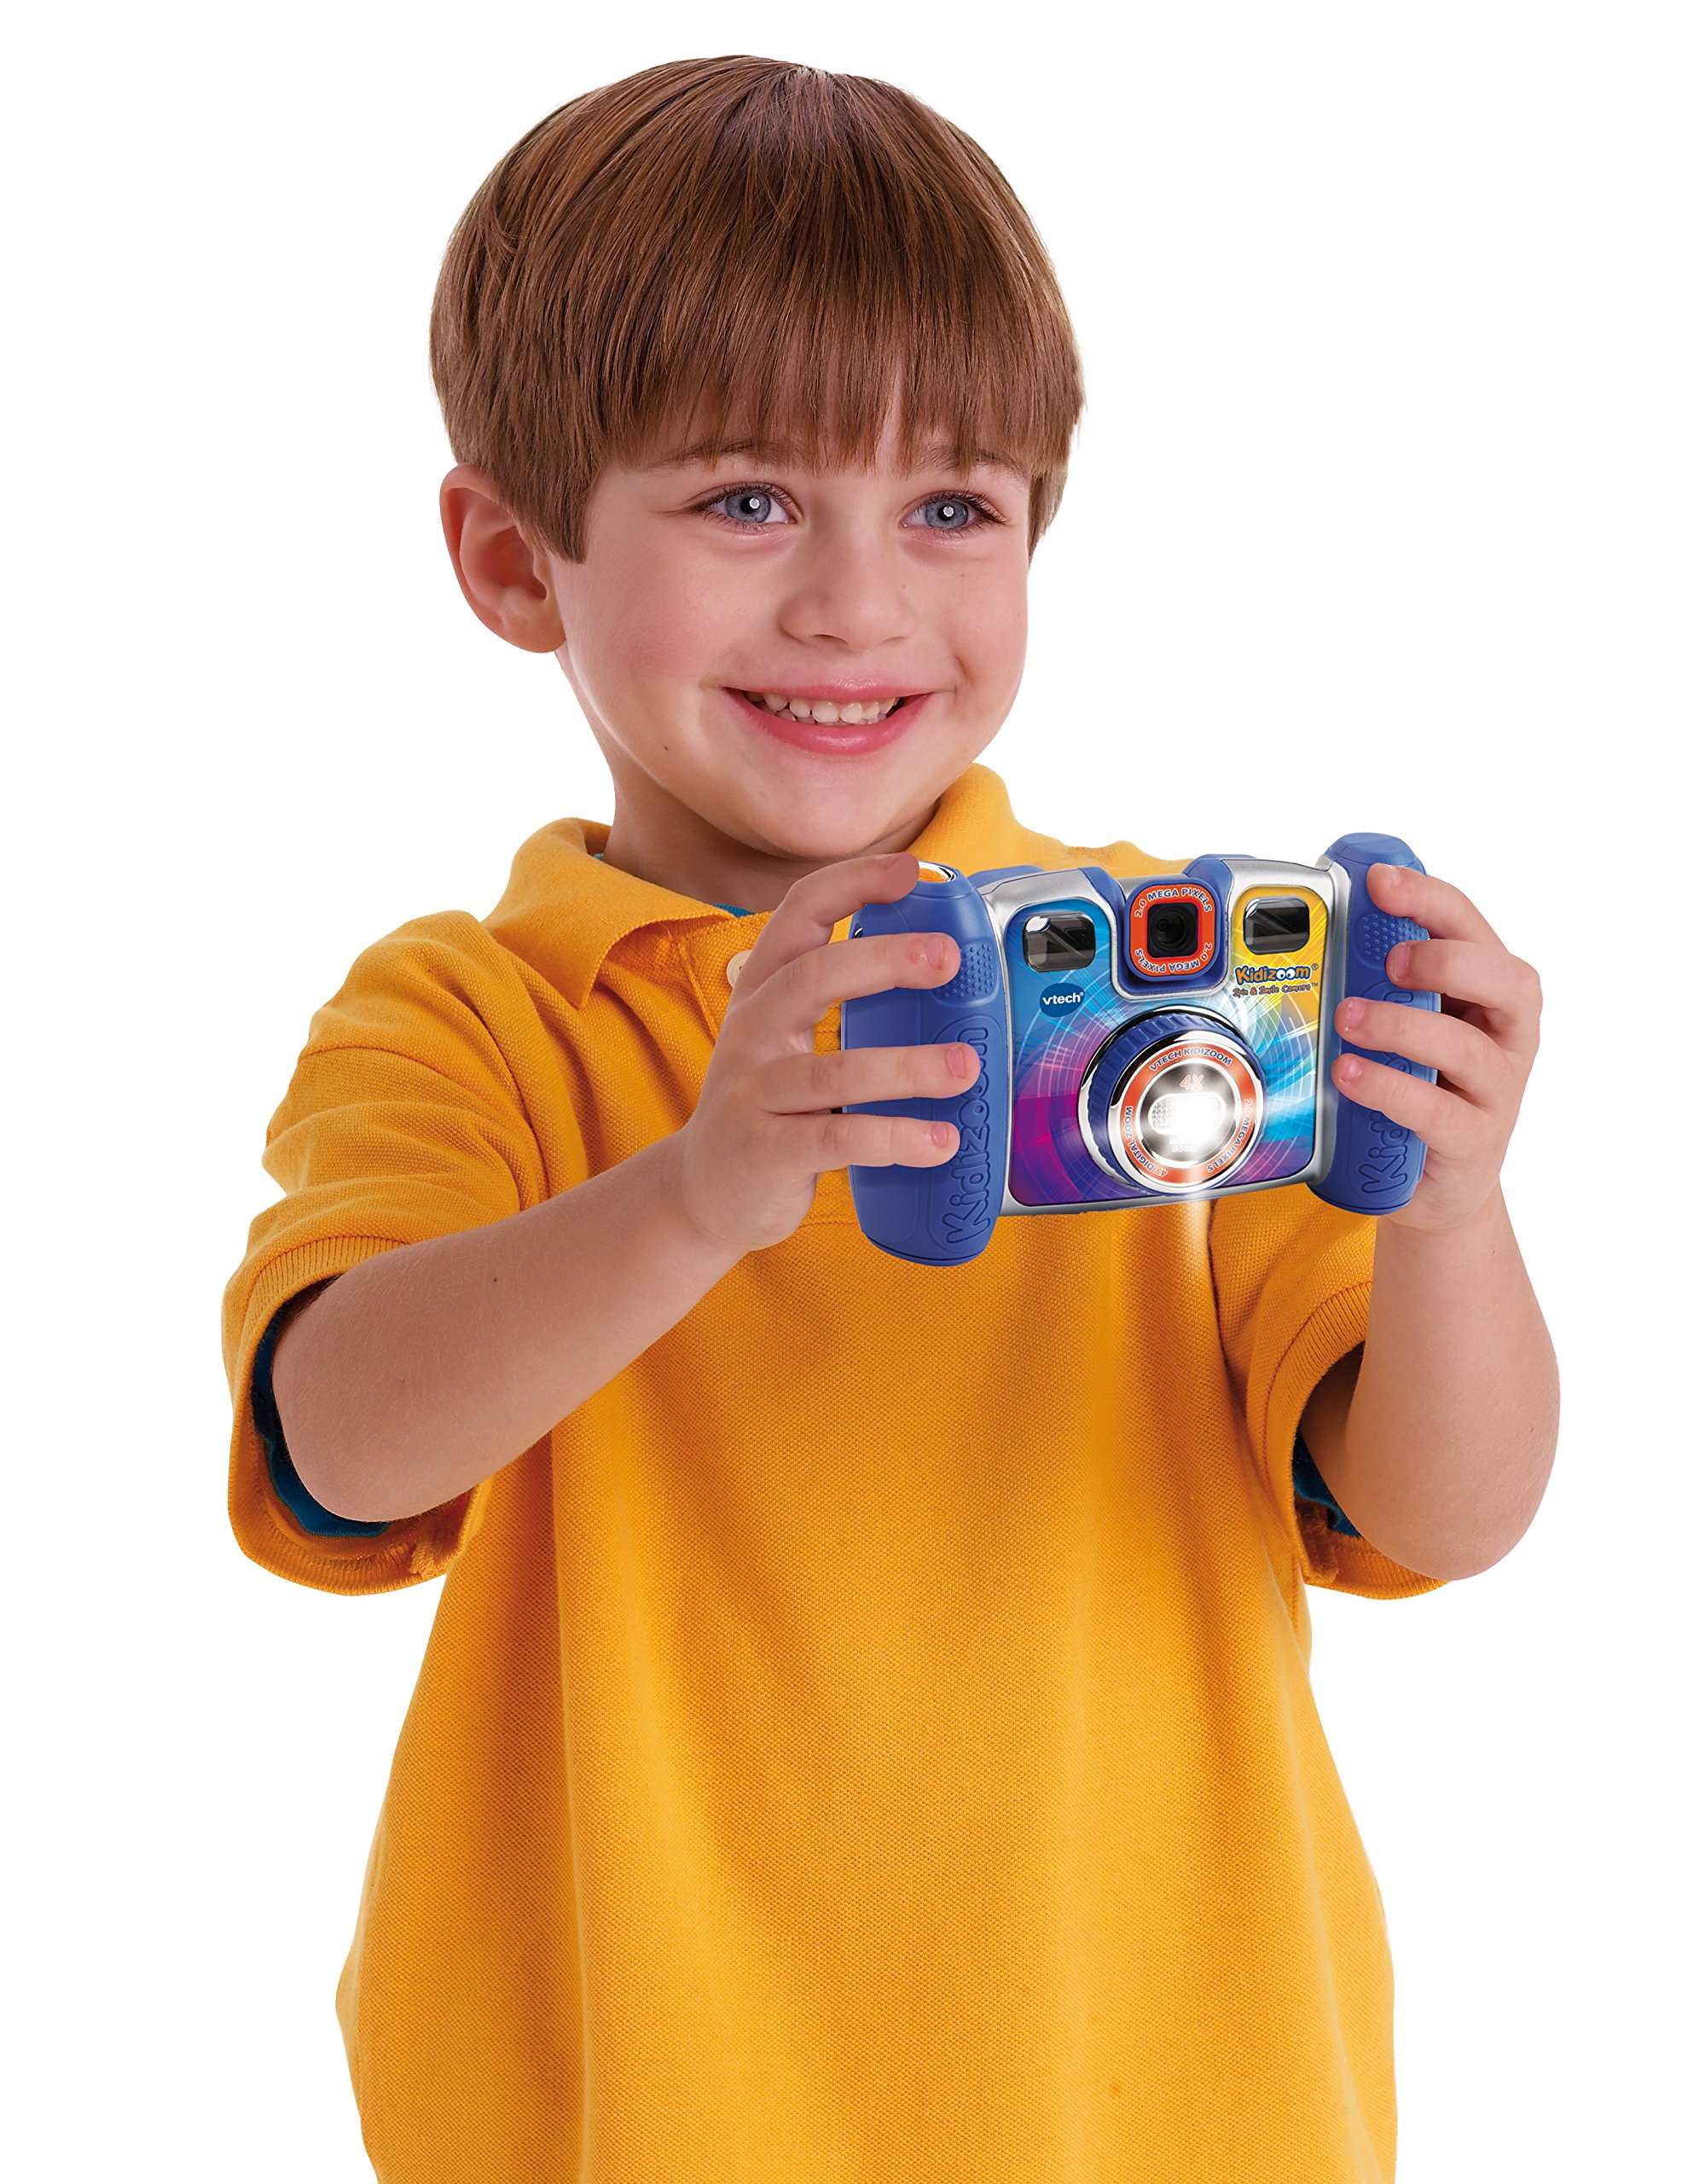 VTech Kidizoom Spin and Smile Camera, Blue by VTech (Image #4)